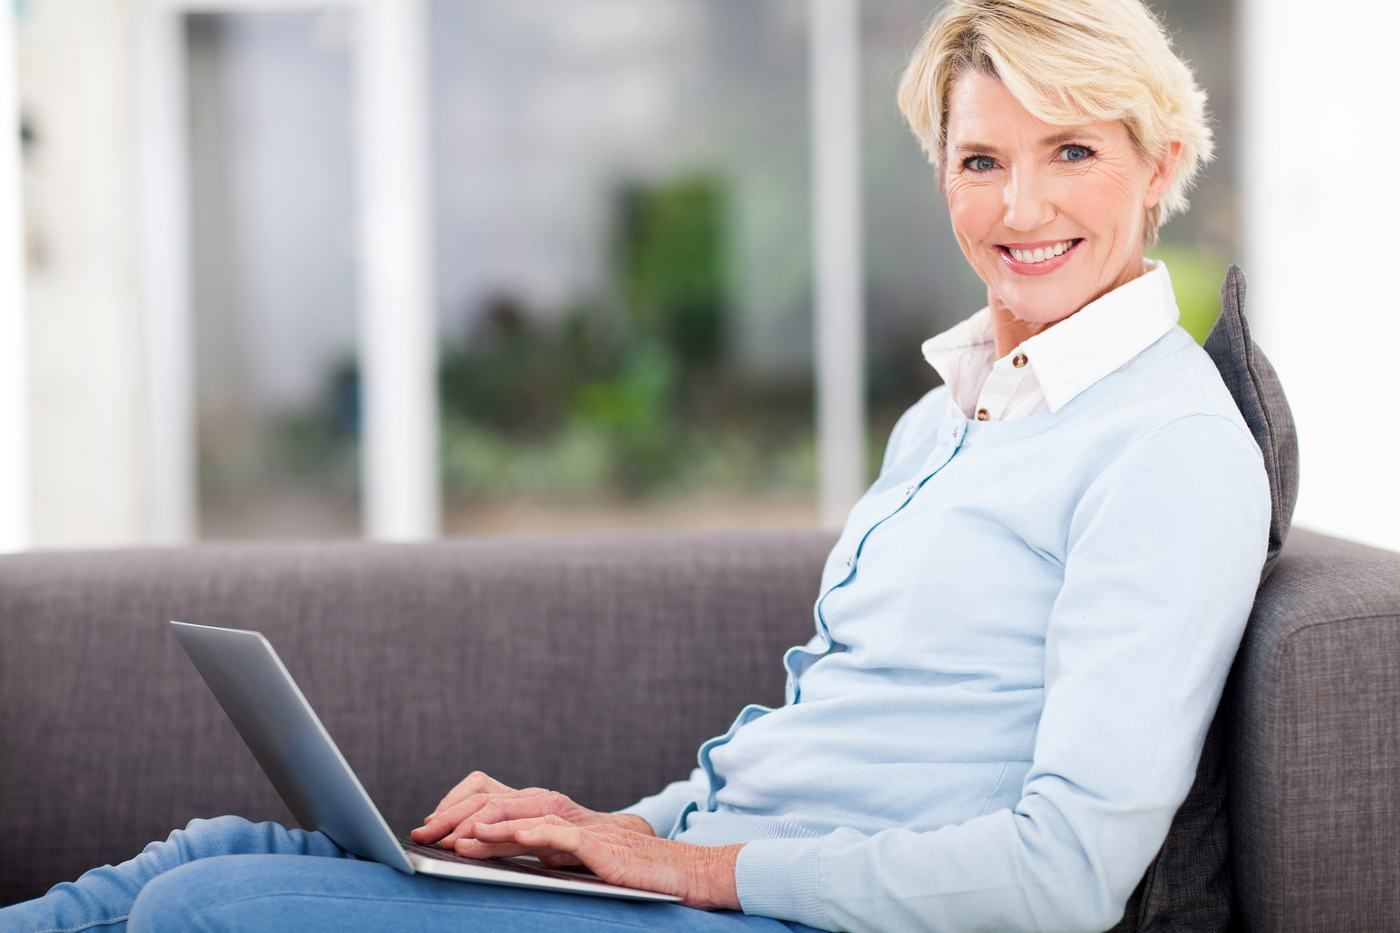 Blond Female Sitting On Couch With Laptop